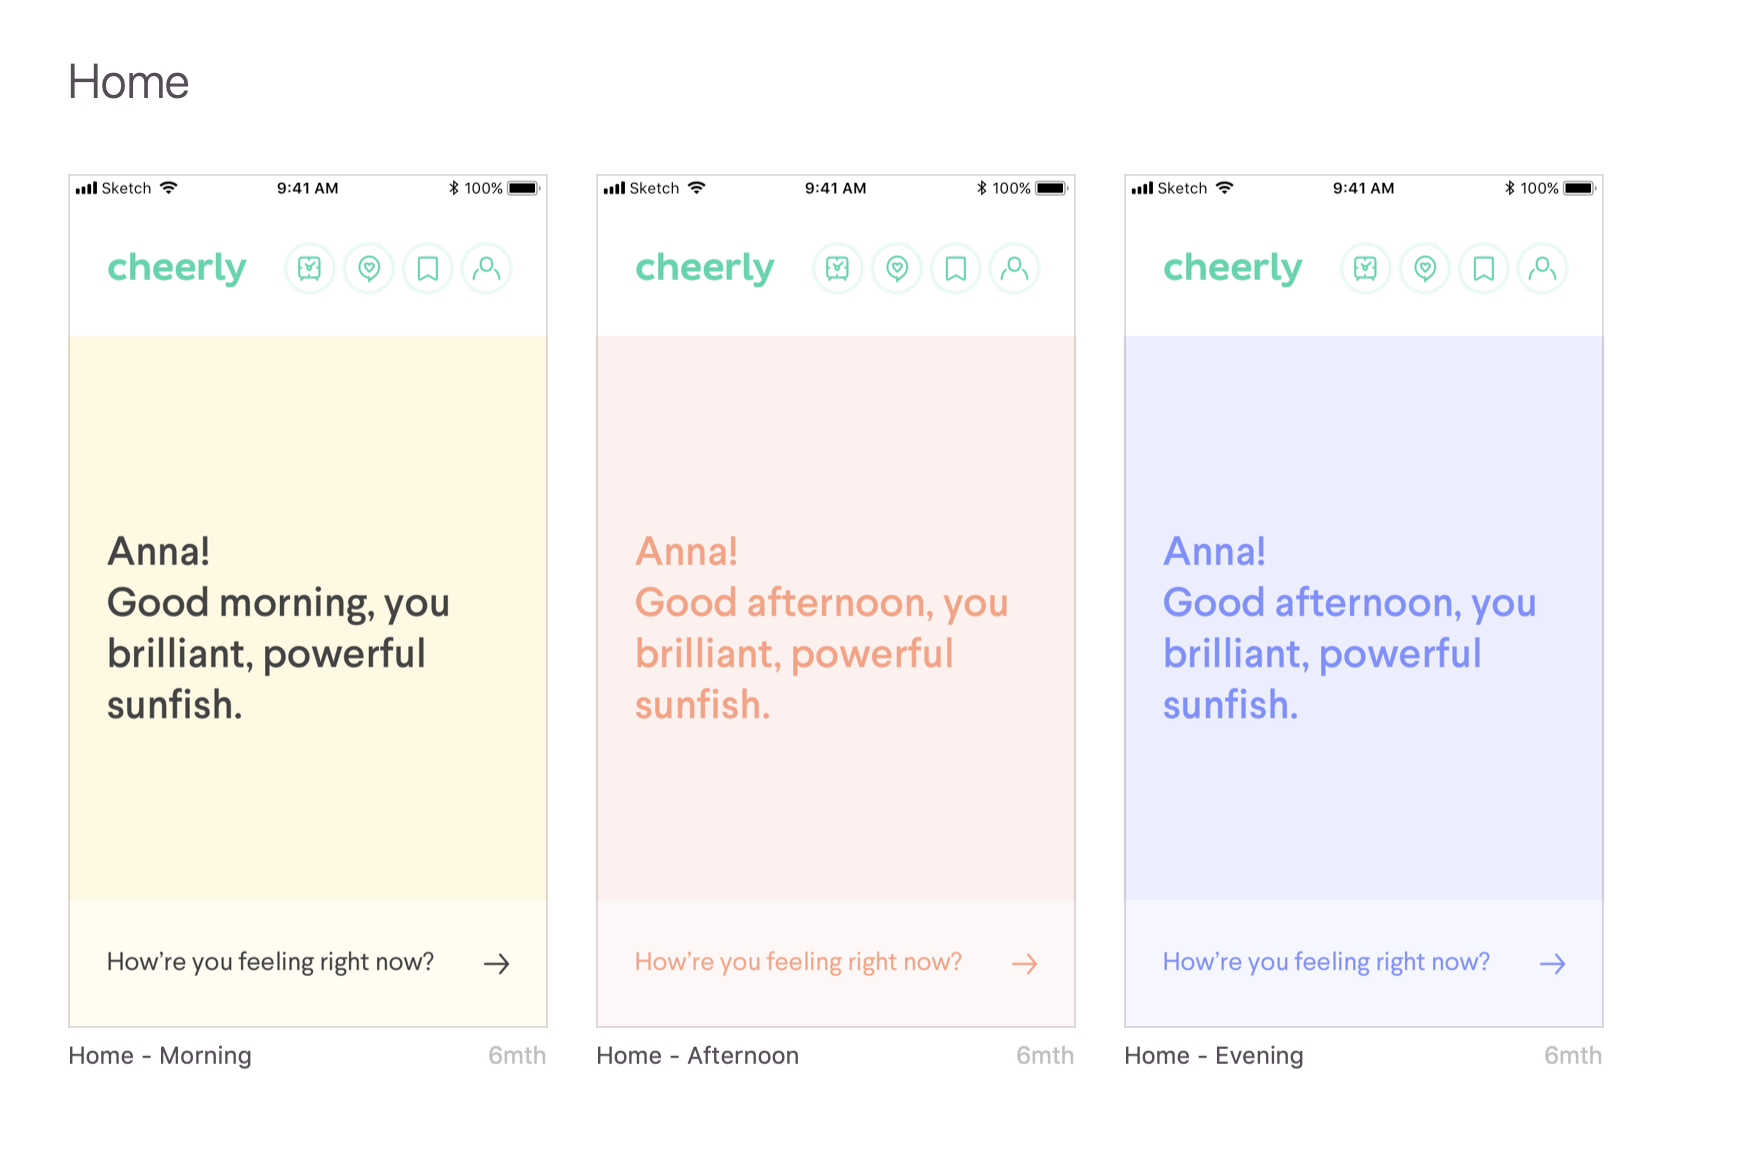 Cheerly's bright colors on the home screen change throughout the day along with quirky and relevant greetings.